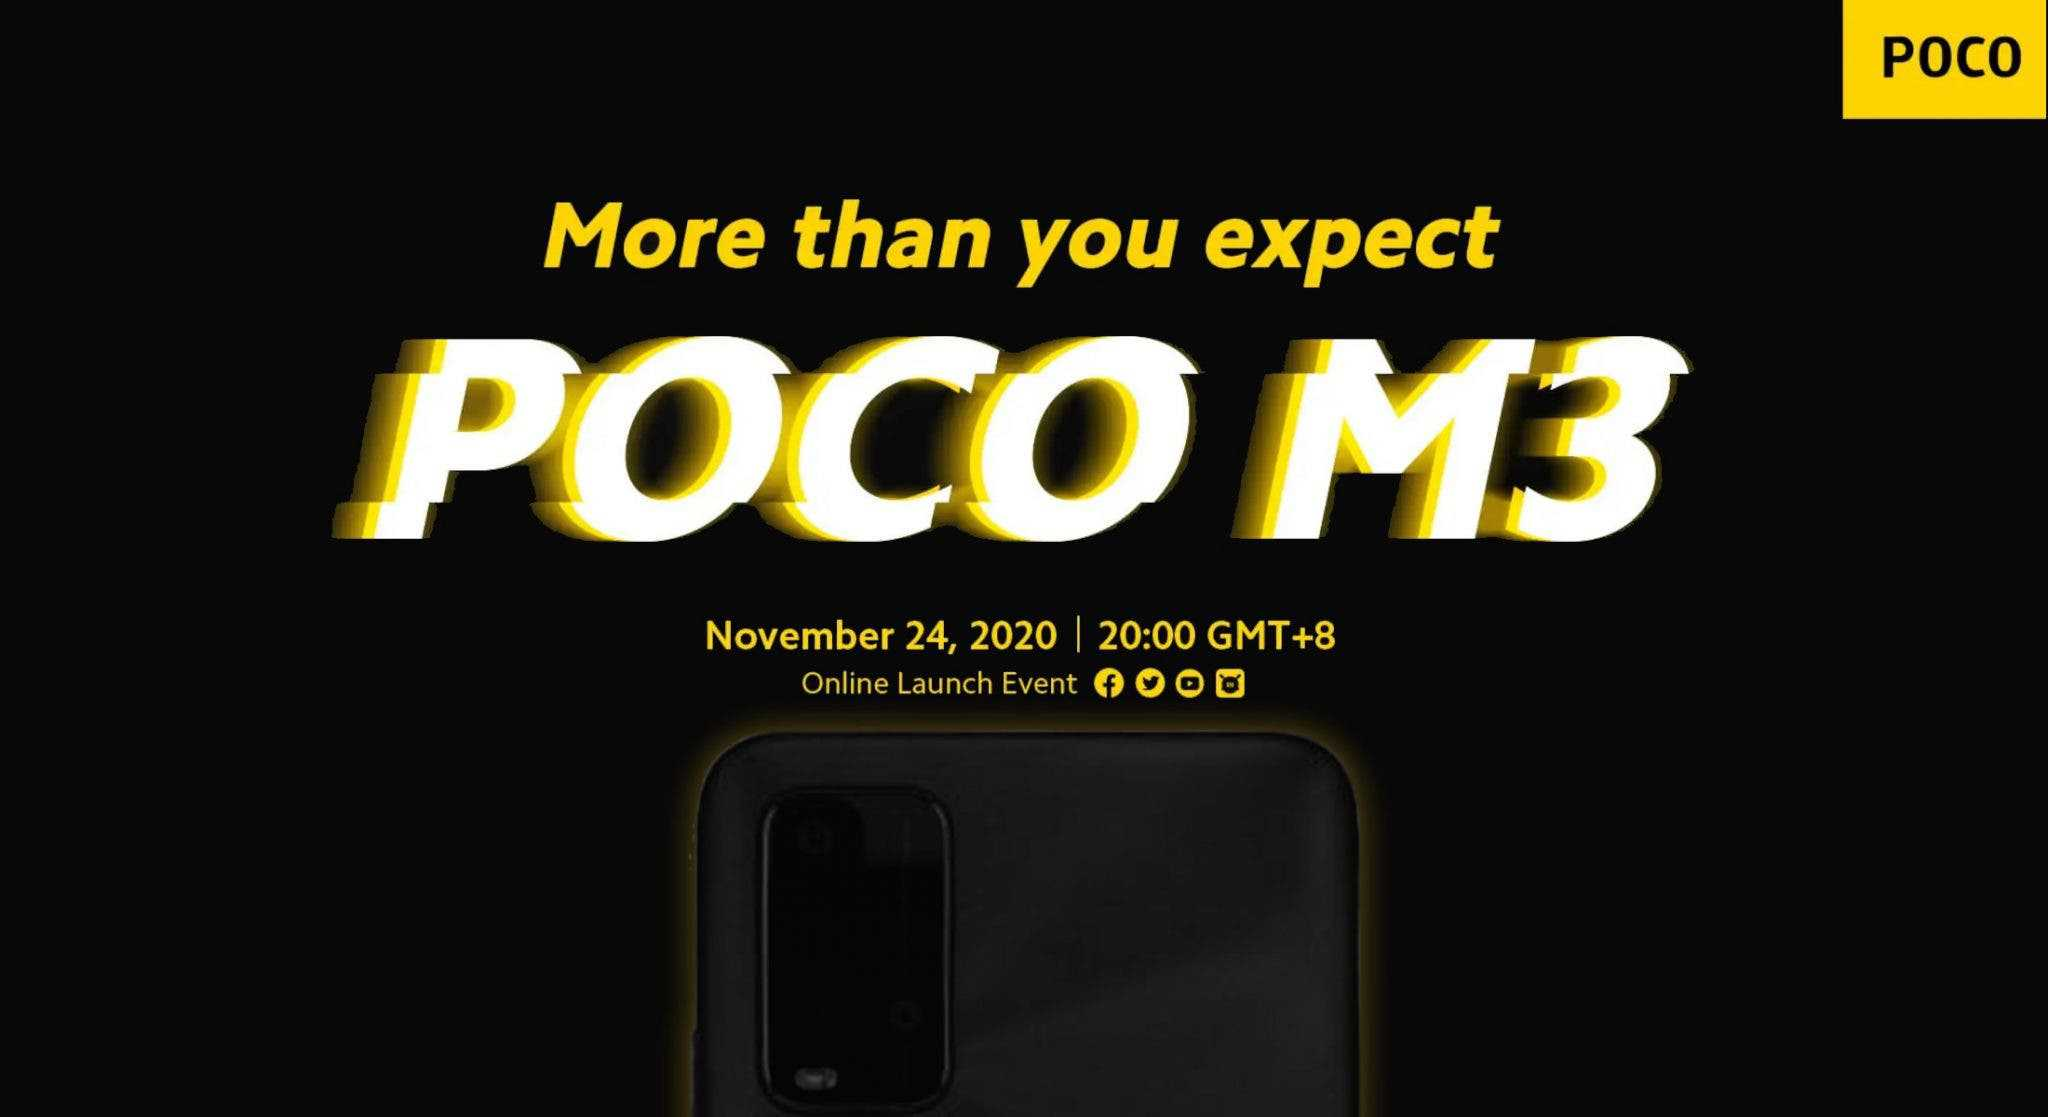 POCO M3 leaked rendering image, technical specifications